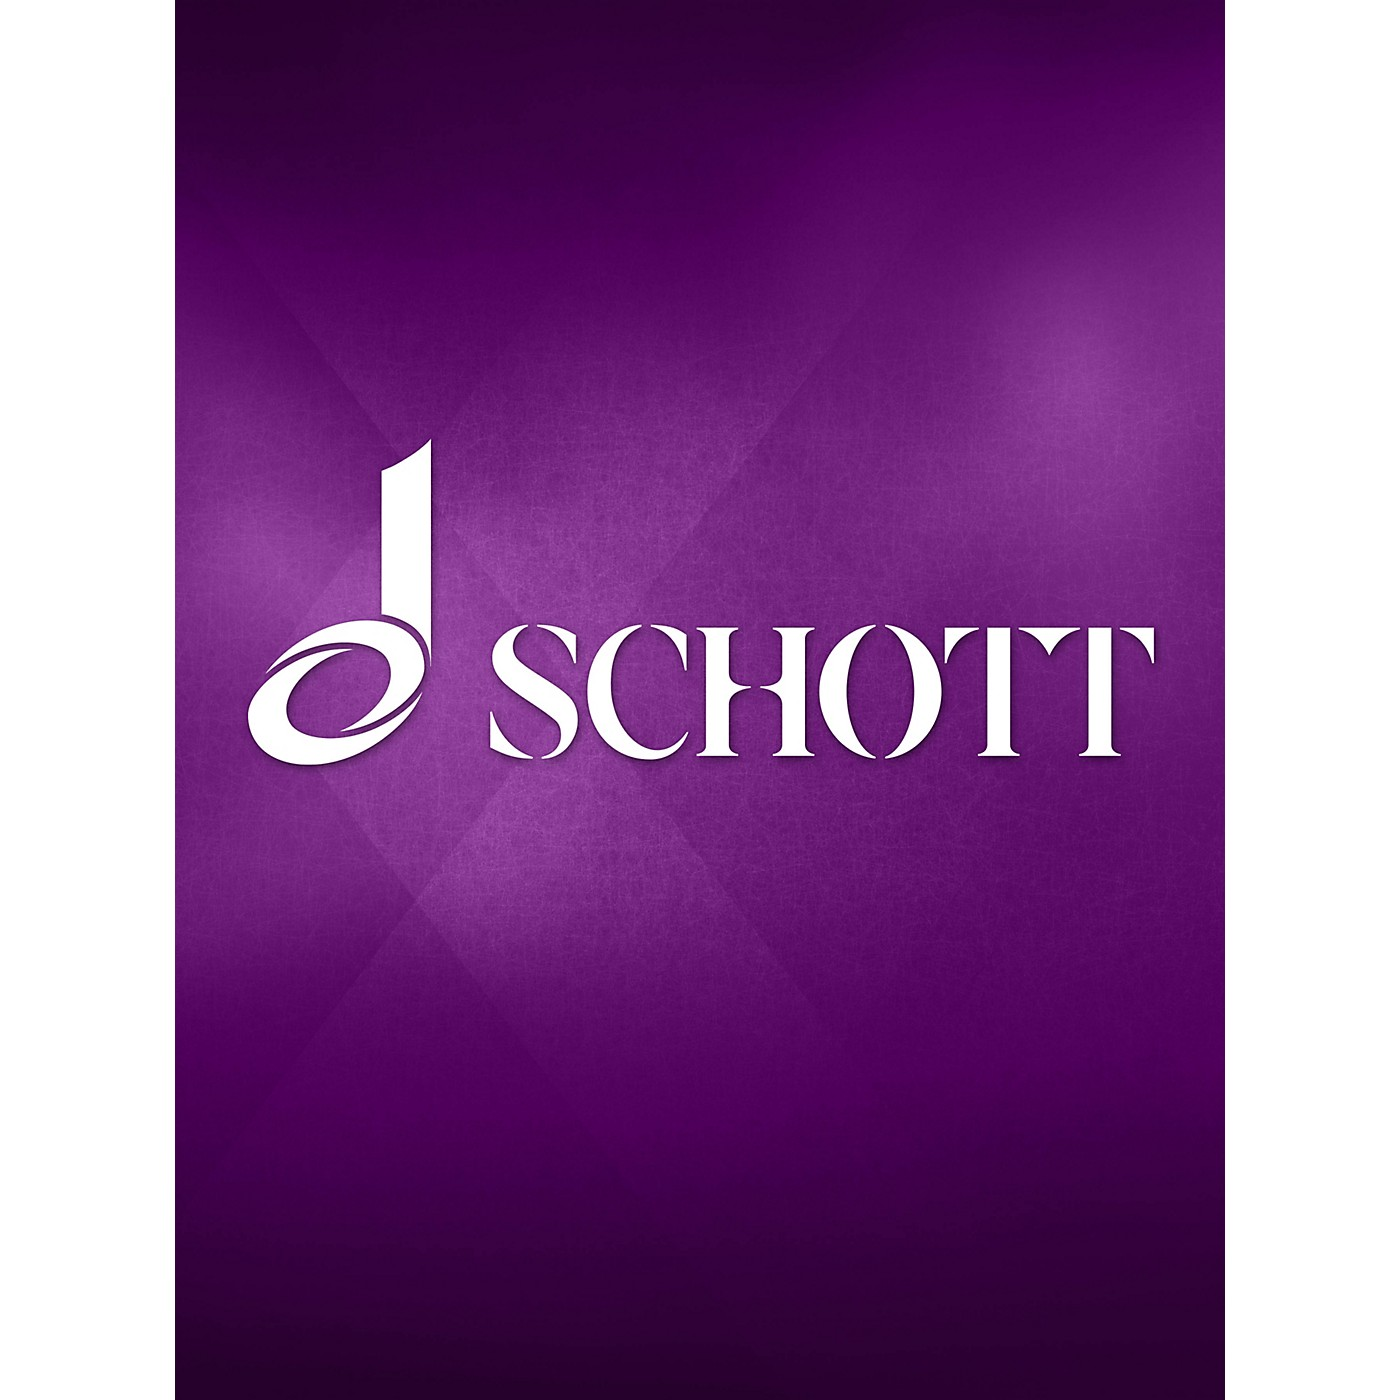 Schott Kammermusik #5 Op. 36, No. 4 (Study Score) Schott Series Composed by Paul Hindemith thumbnail